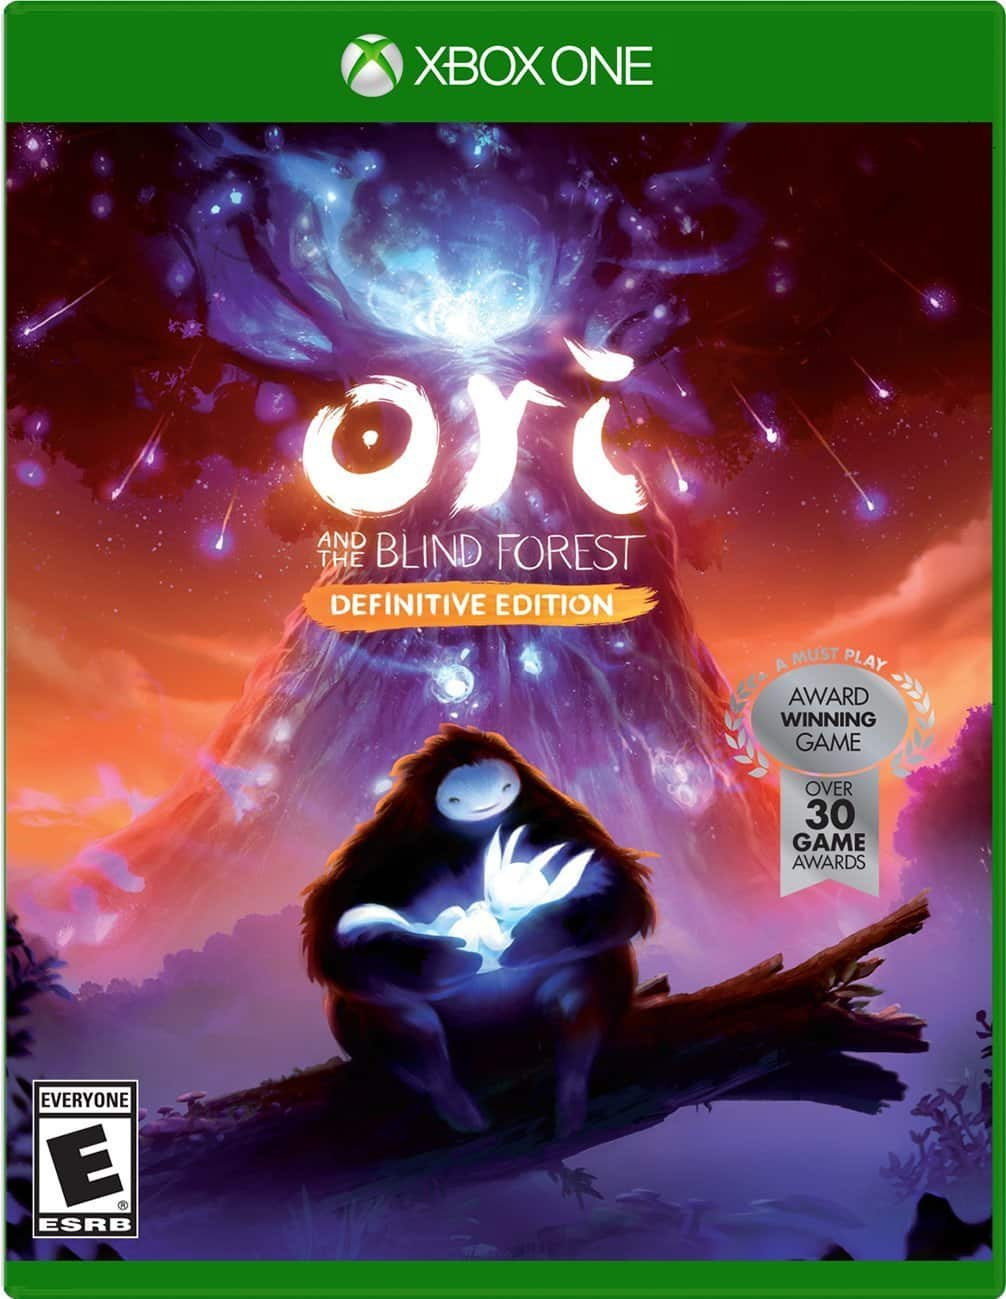 Paragon: Essentials Edition (PS4) $35.99, Ori and the Blind Forest: Definitive Edition (Xbox One) $11.99 + Free Shipping